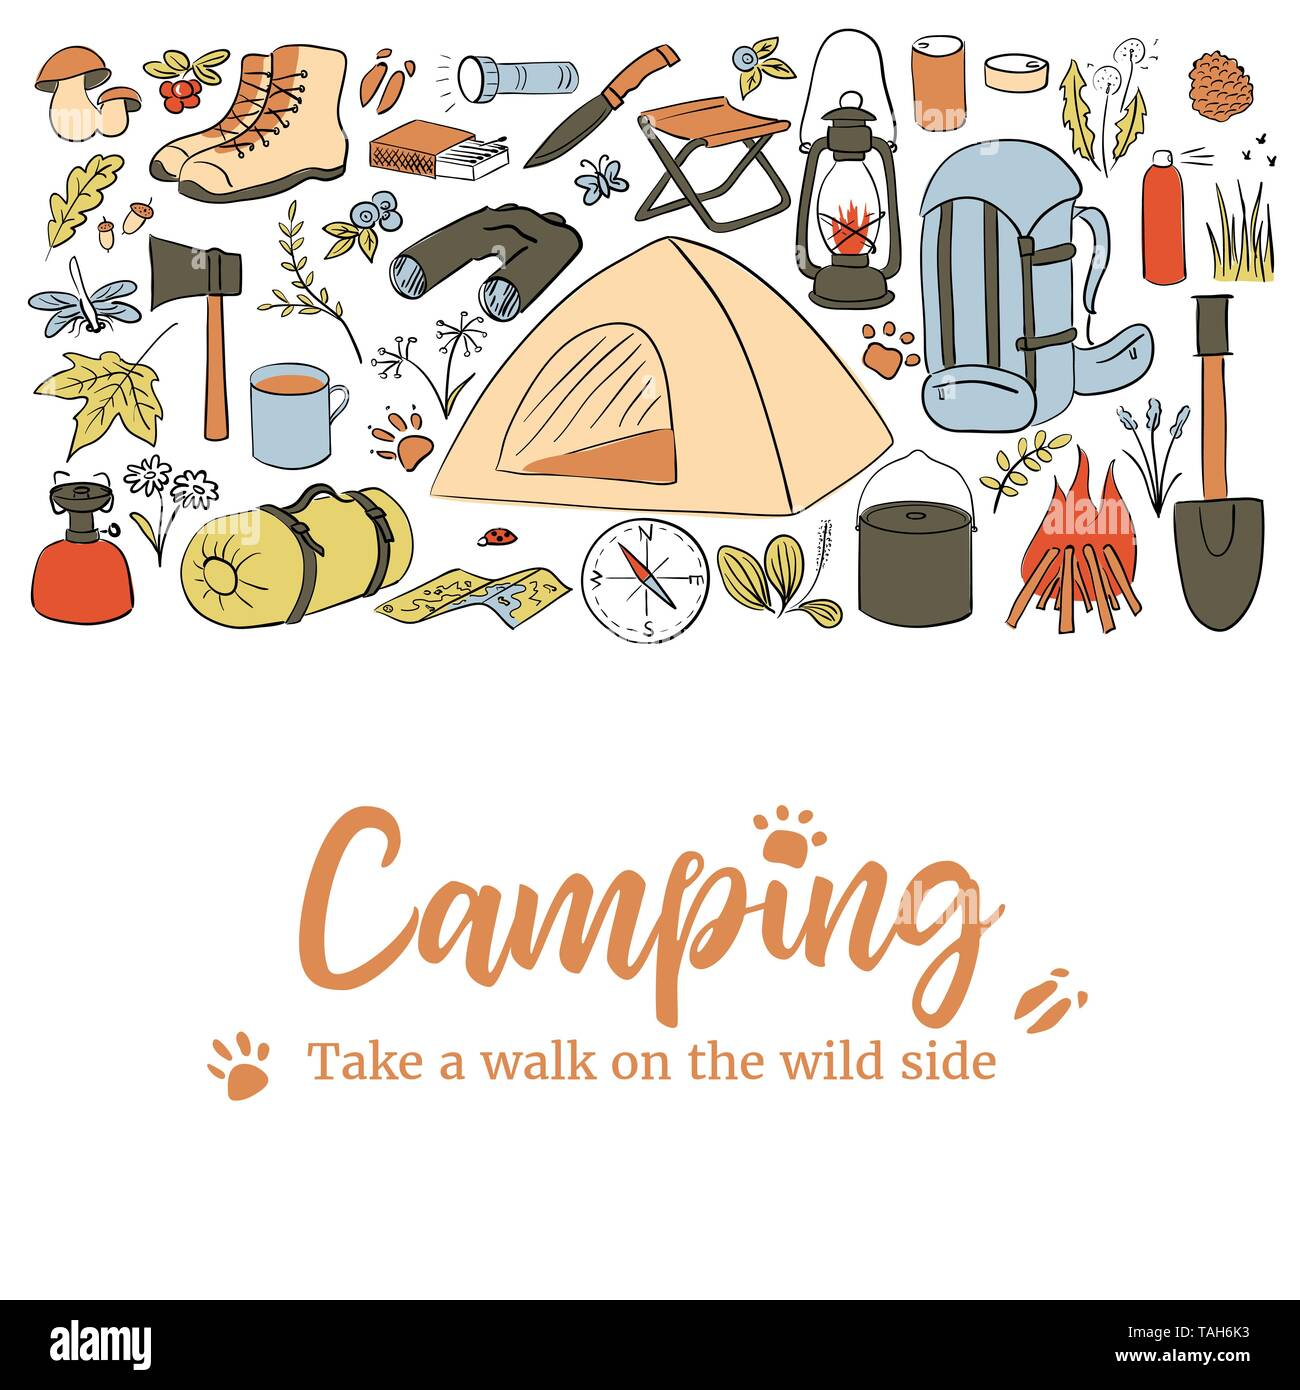 Camping card template. Take a walk on the wild side. Hiking icons colored sketch style set. vector collection. frame on top text, copy space. Vector i - Stock Vector